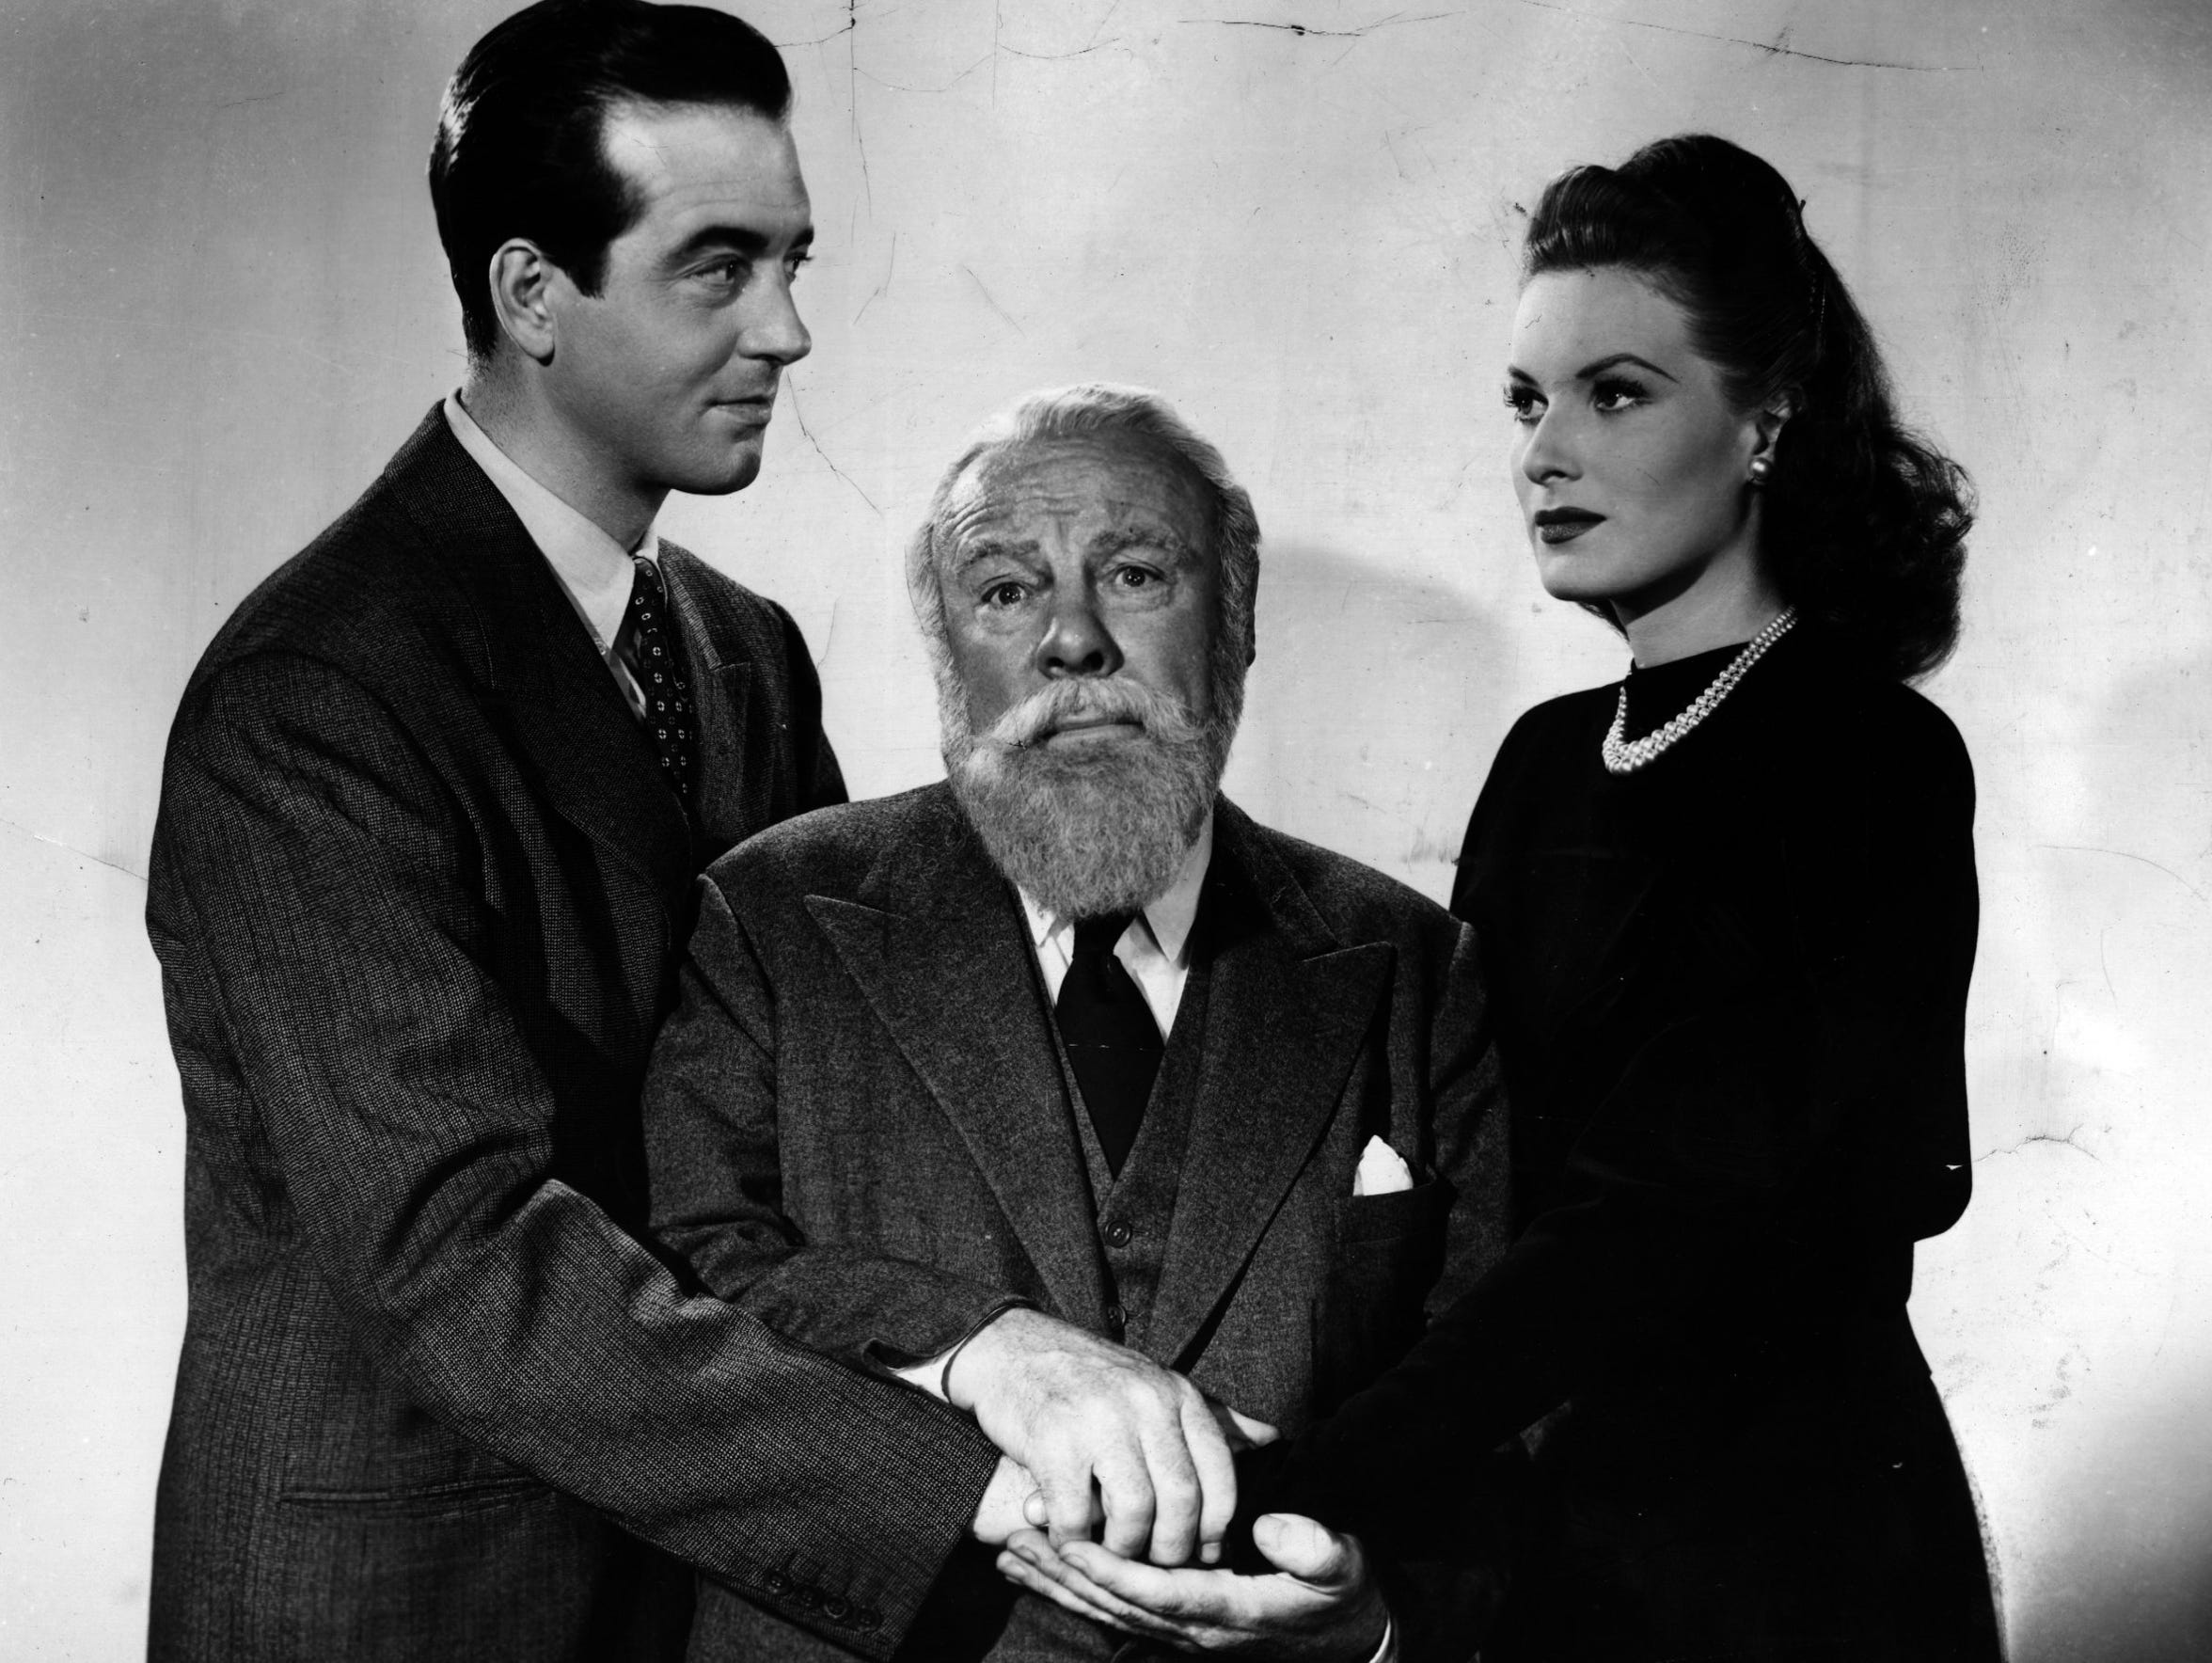 John Payne (left), Edmund Gwenn and Maureen O'Hara